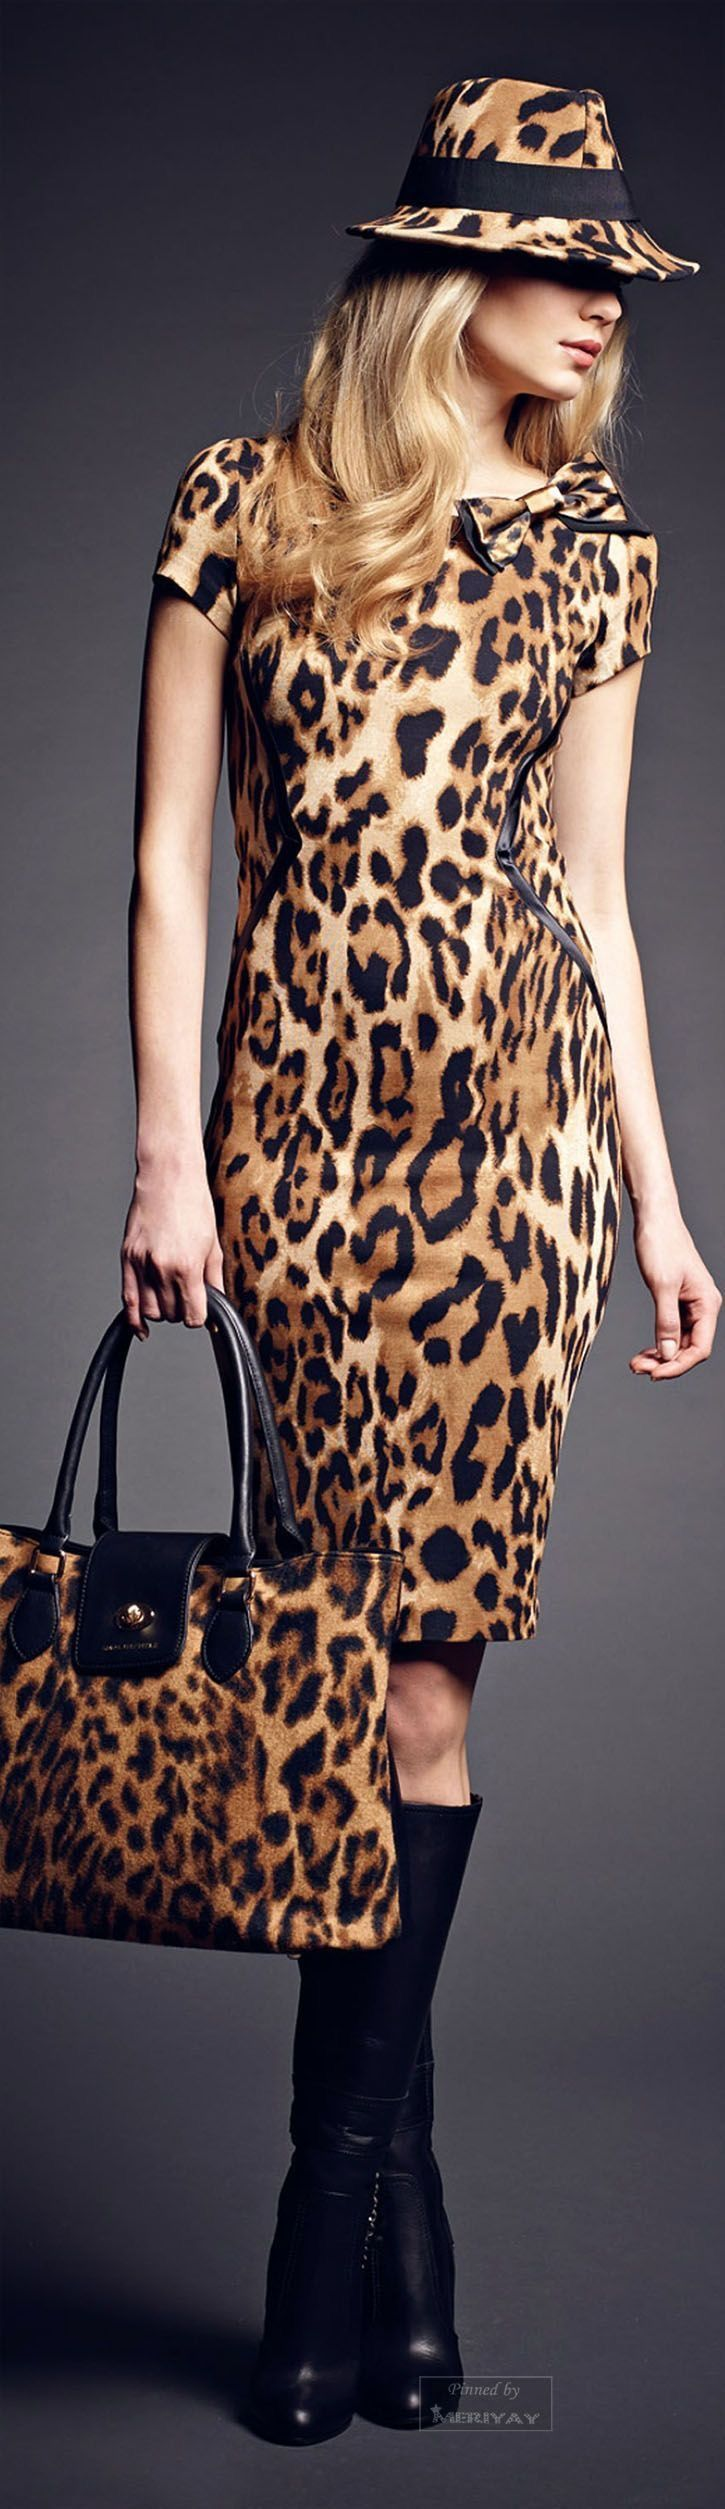 145 best the power of animal prints images on pinterest